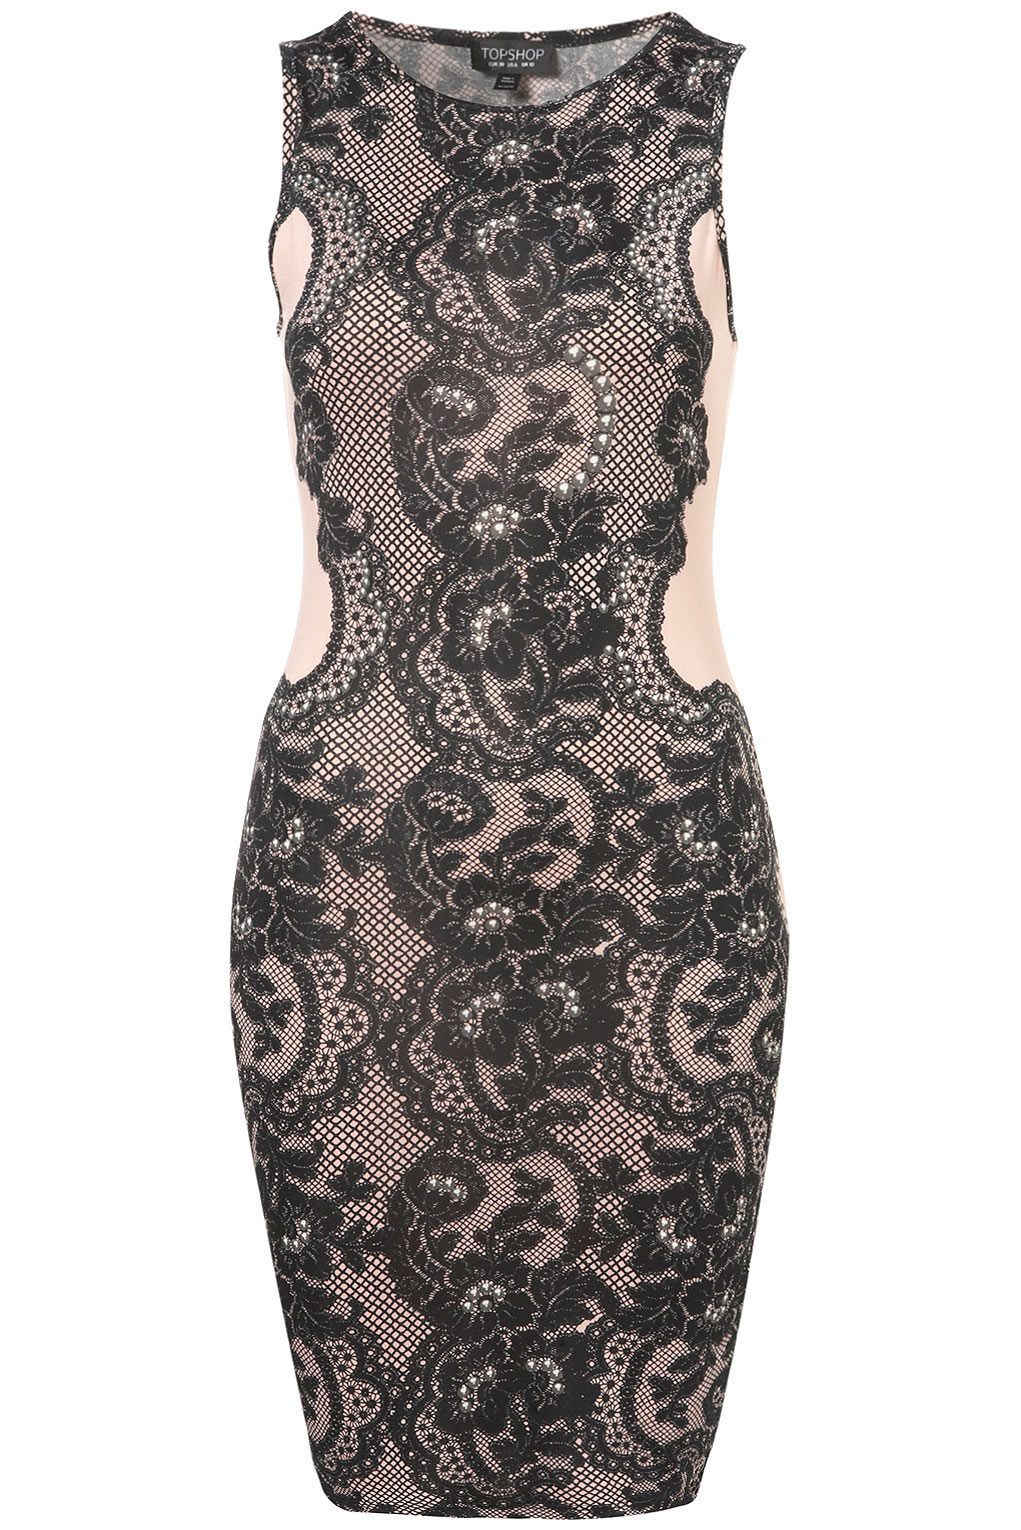 Lyst Topshop Lace And Gem Bodycon Dress In Purple